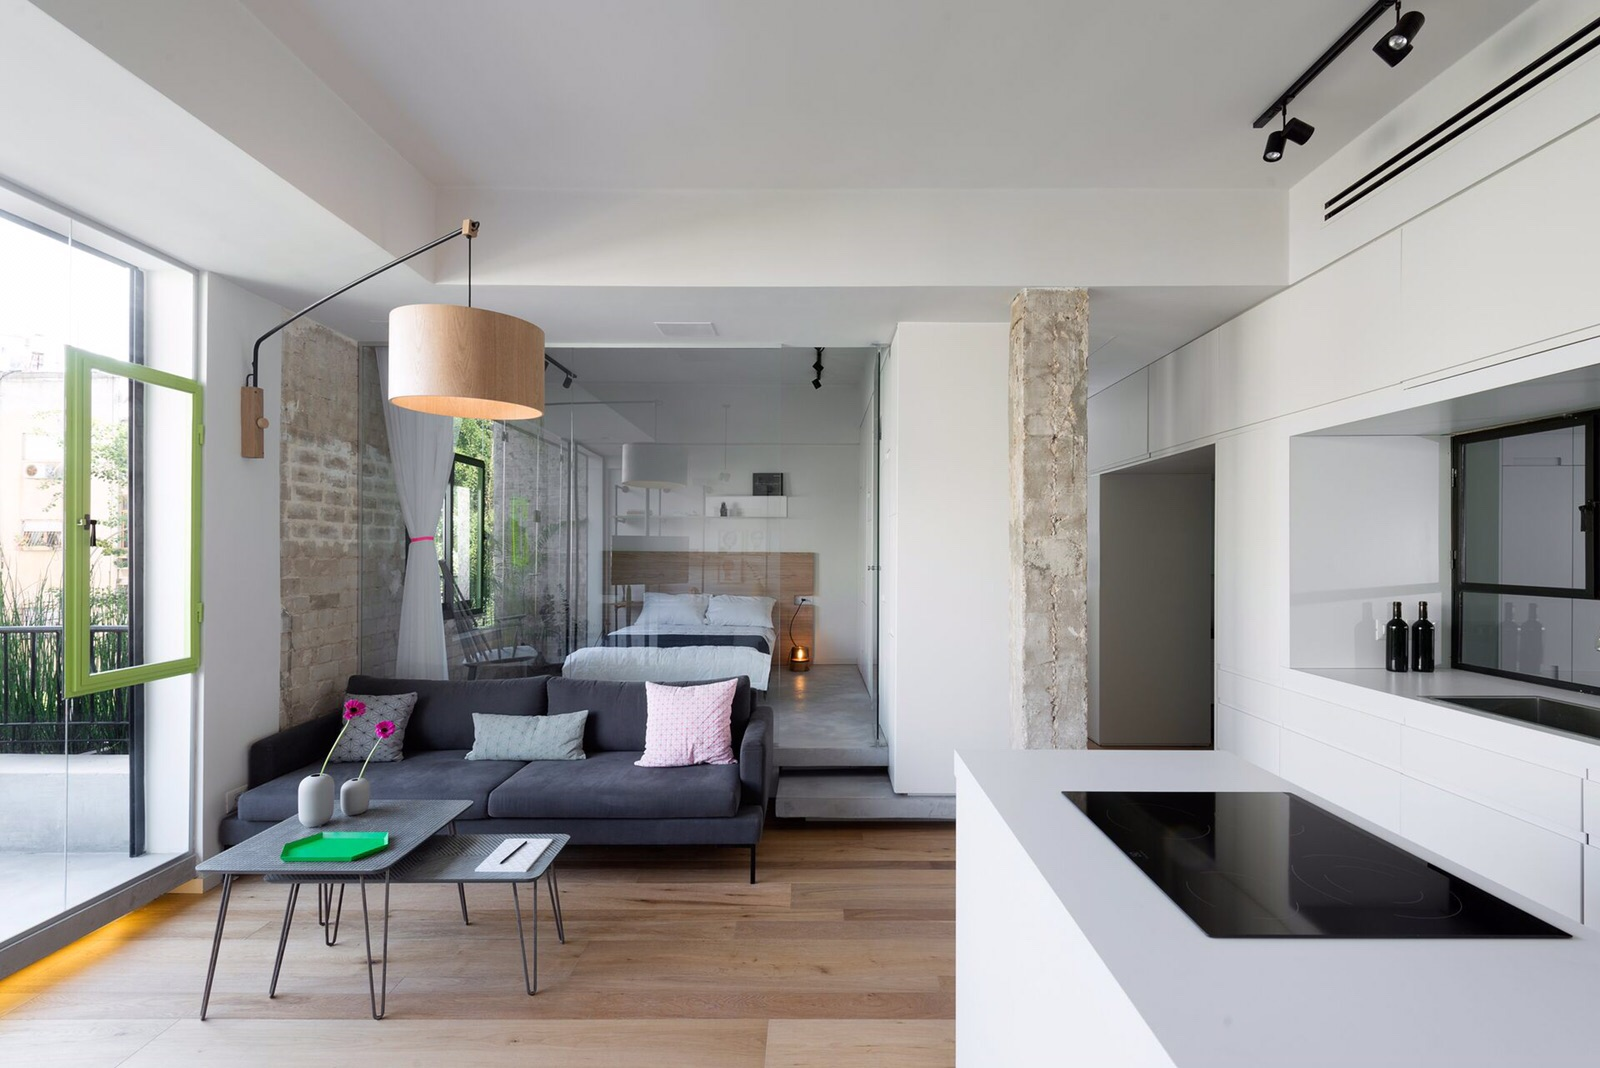 Modern & Minimalist 2BR Apartment for Sale in Tel Aviv's Old North